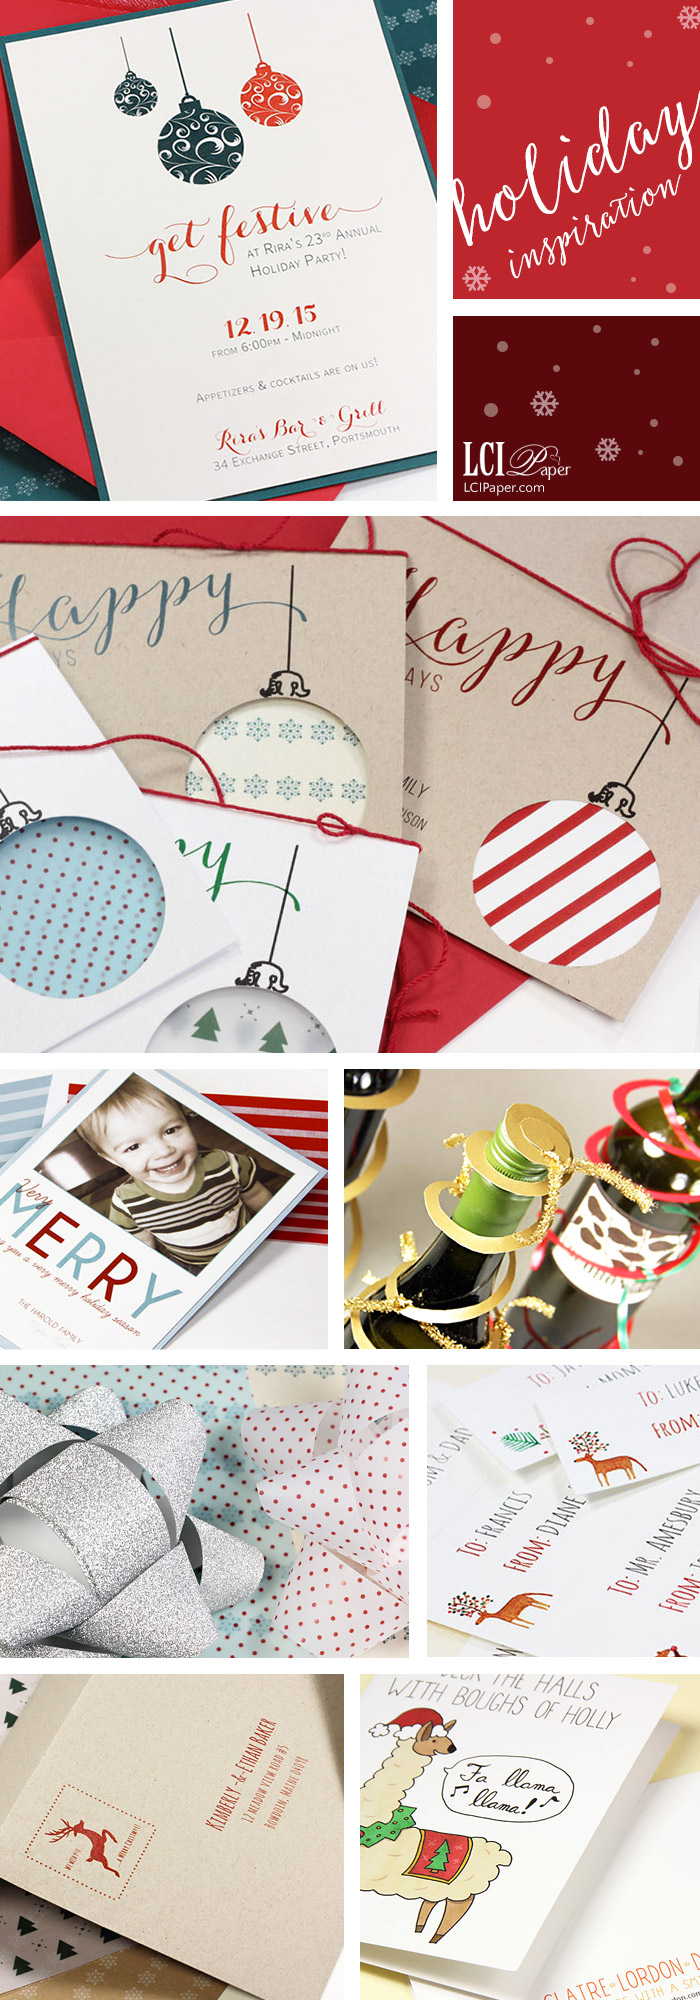 Holiday card and paper craft favorites from LCIPaper.com blog. Holiday creative inspiration